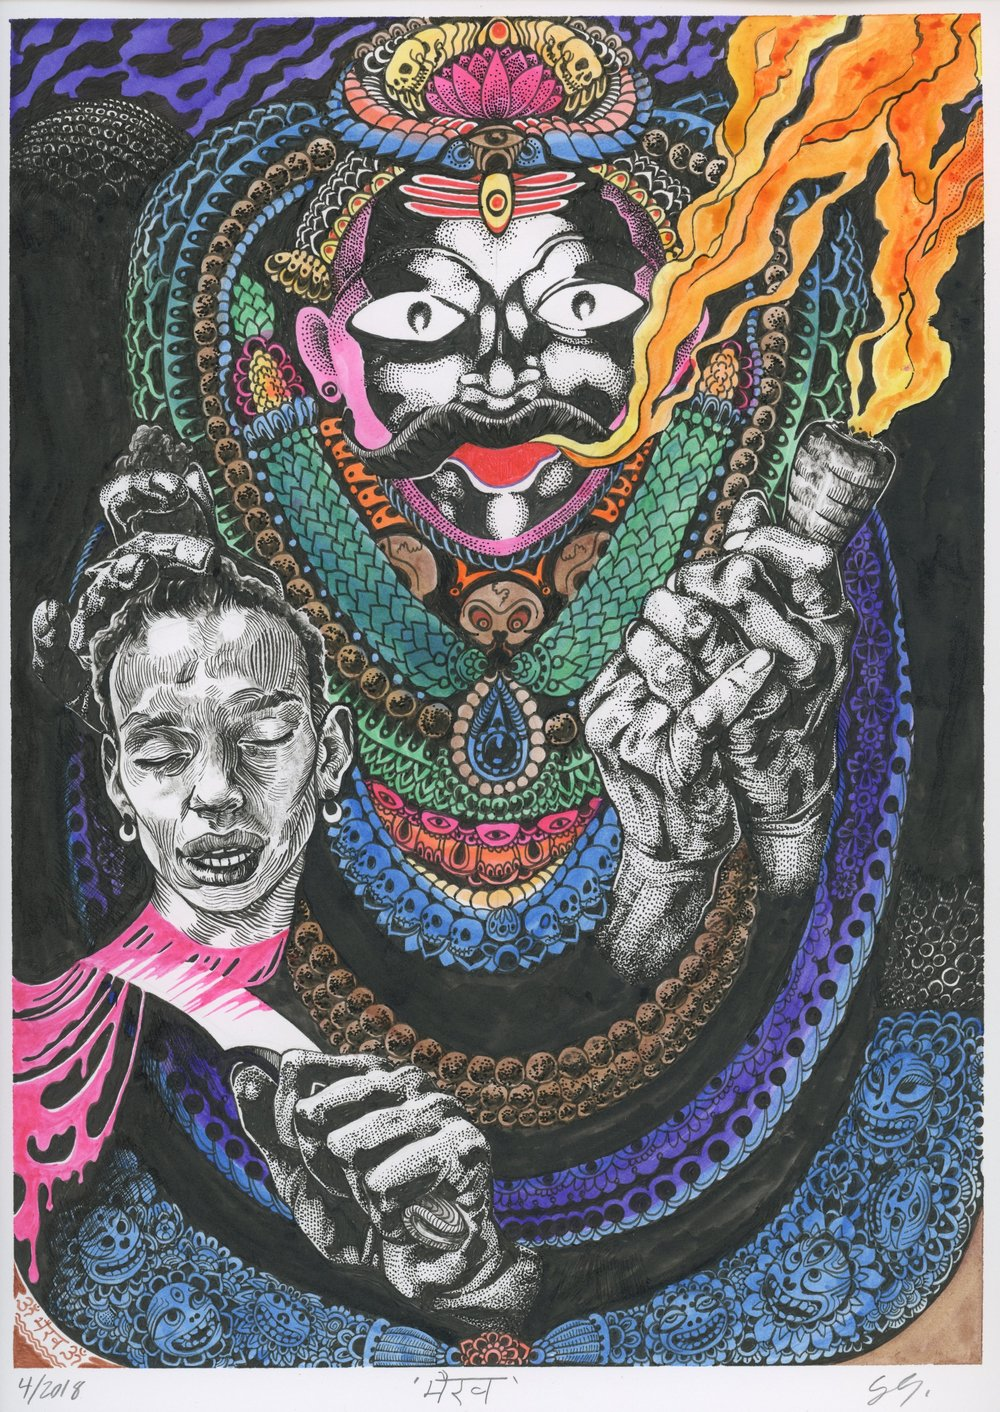 BLACK BHAIRAV WITH CHILLUM AND SEVERED HEAD OF THE ARTIST